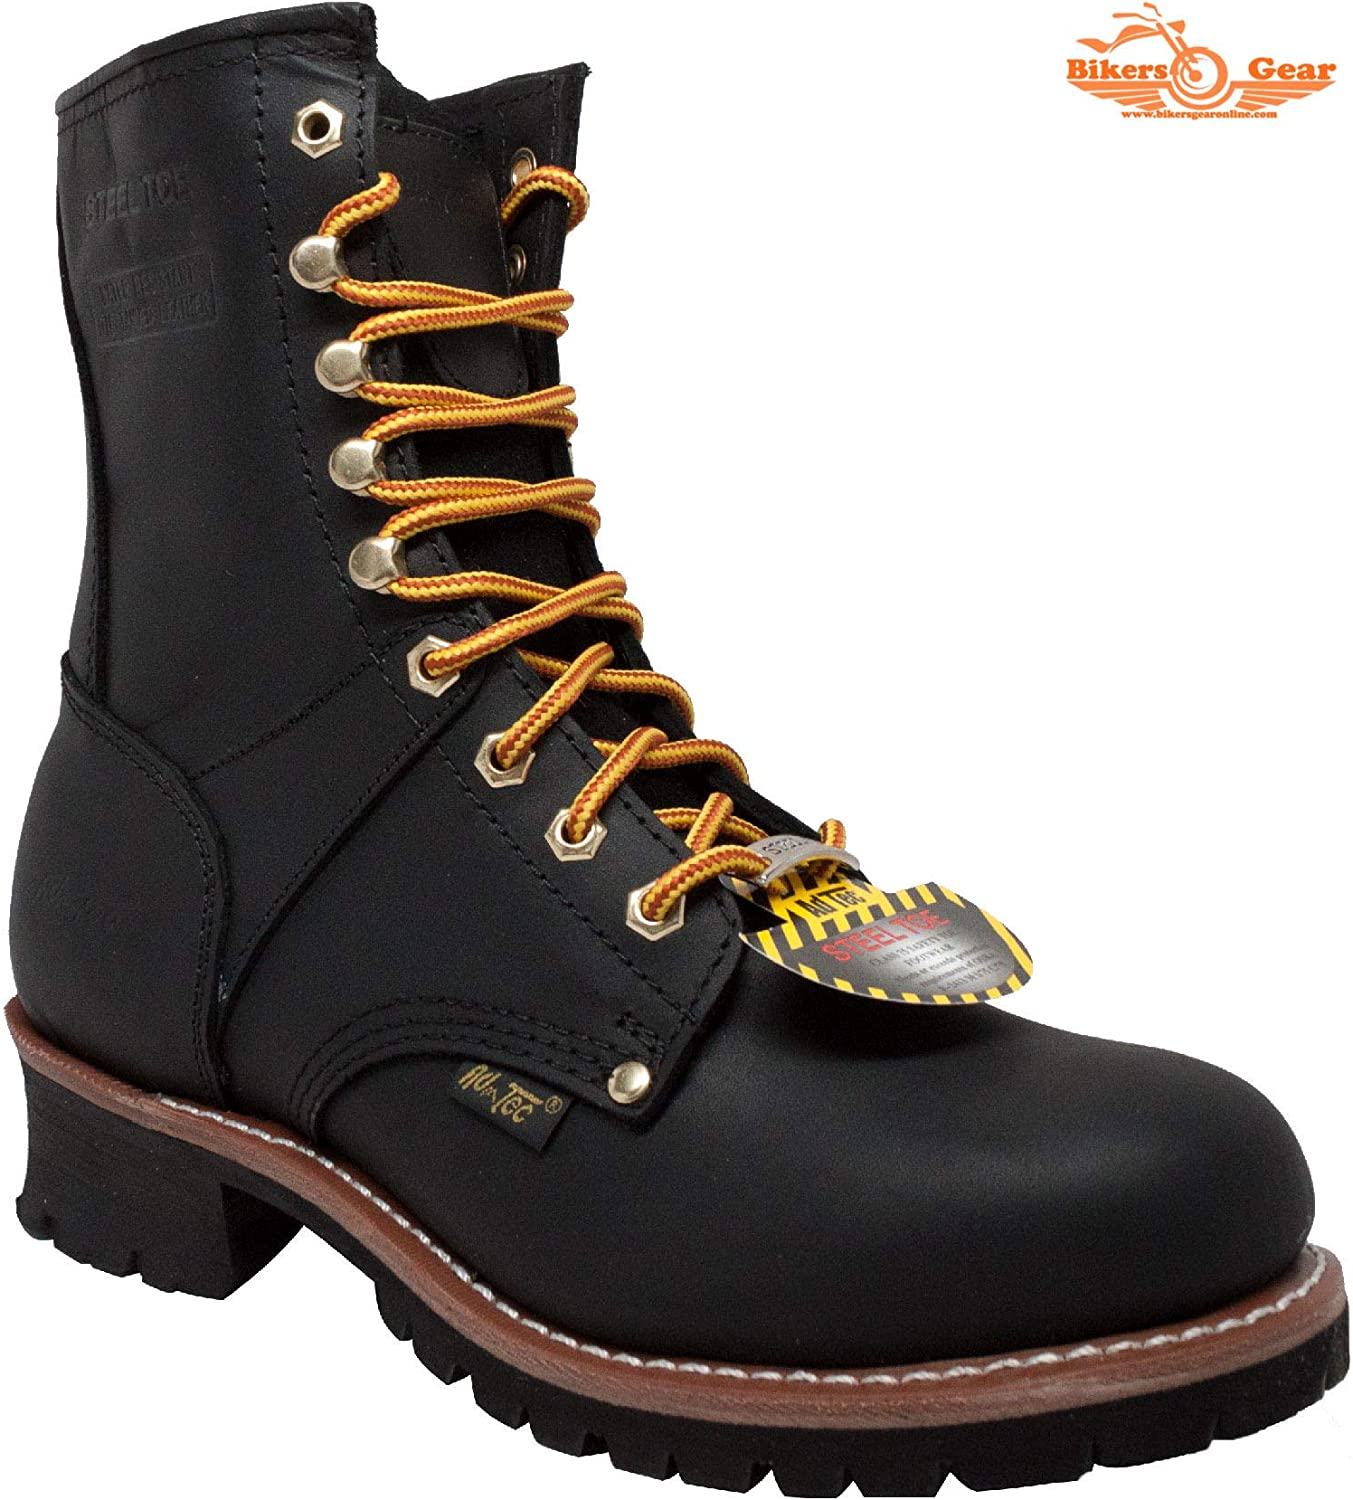 Men's 9 inch Super Logger Leather Boots